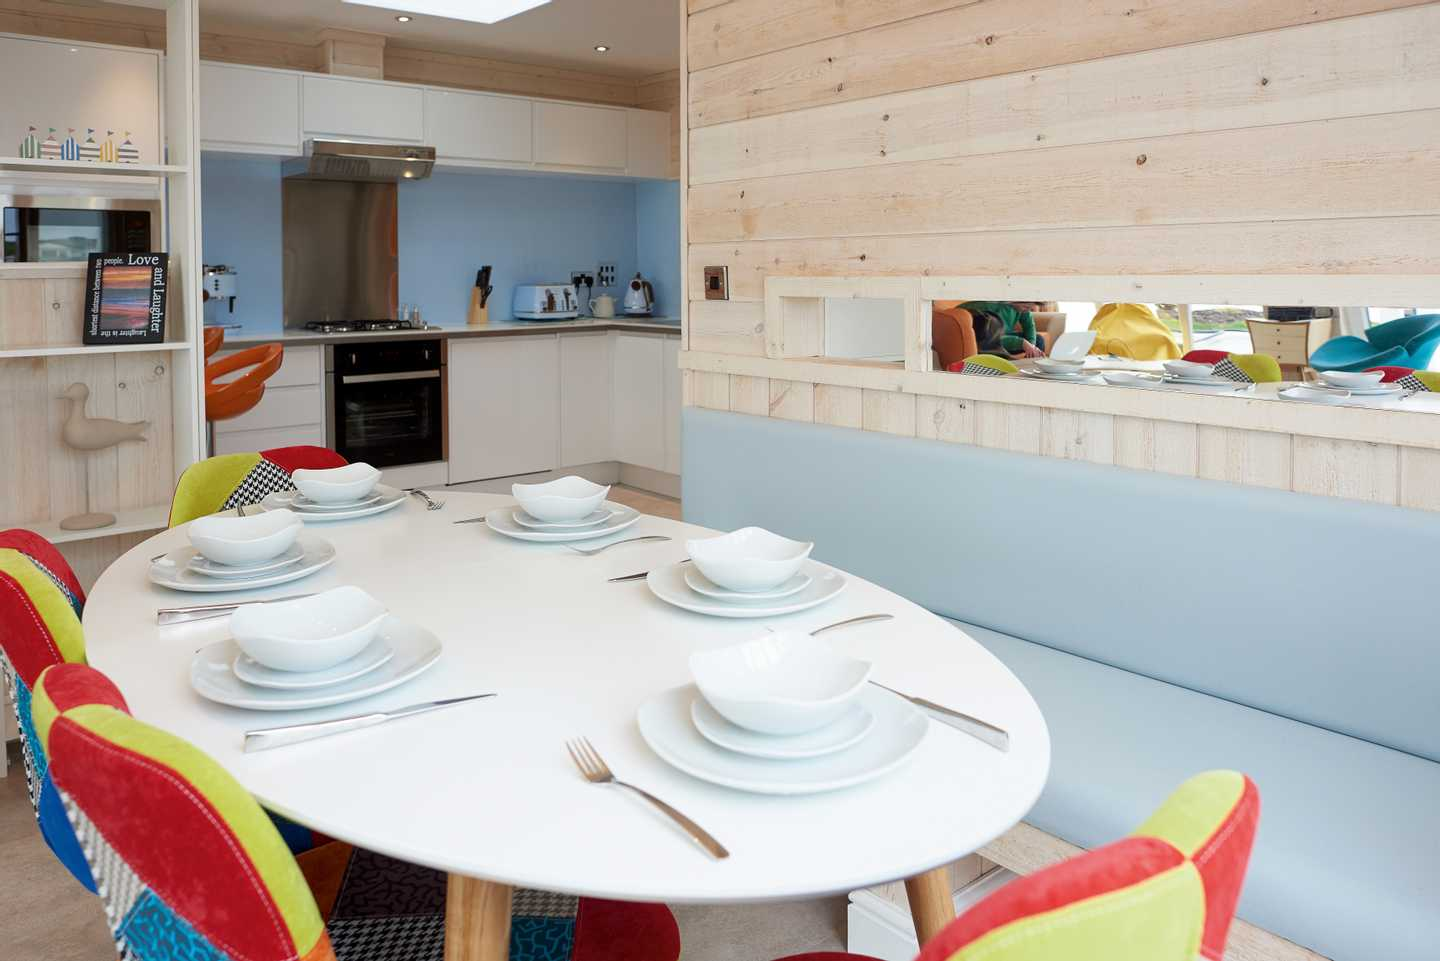 A Beach House dining table with plates, cutlery, chairs and other kitchen accessories